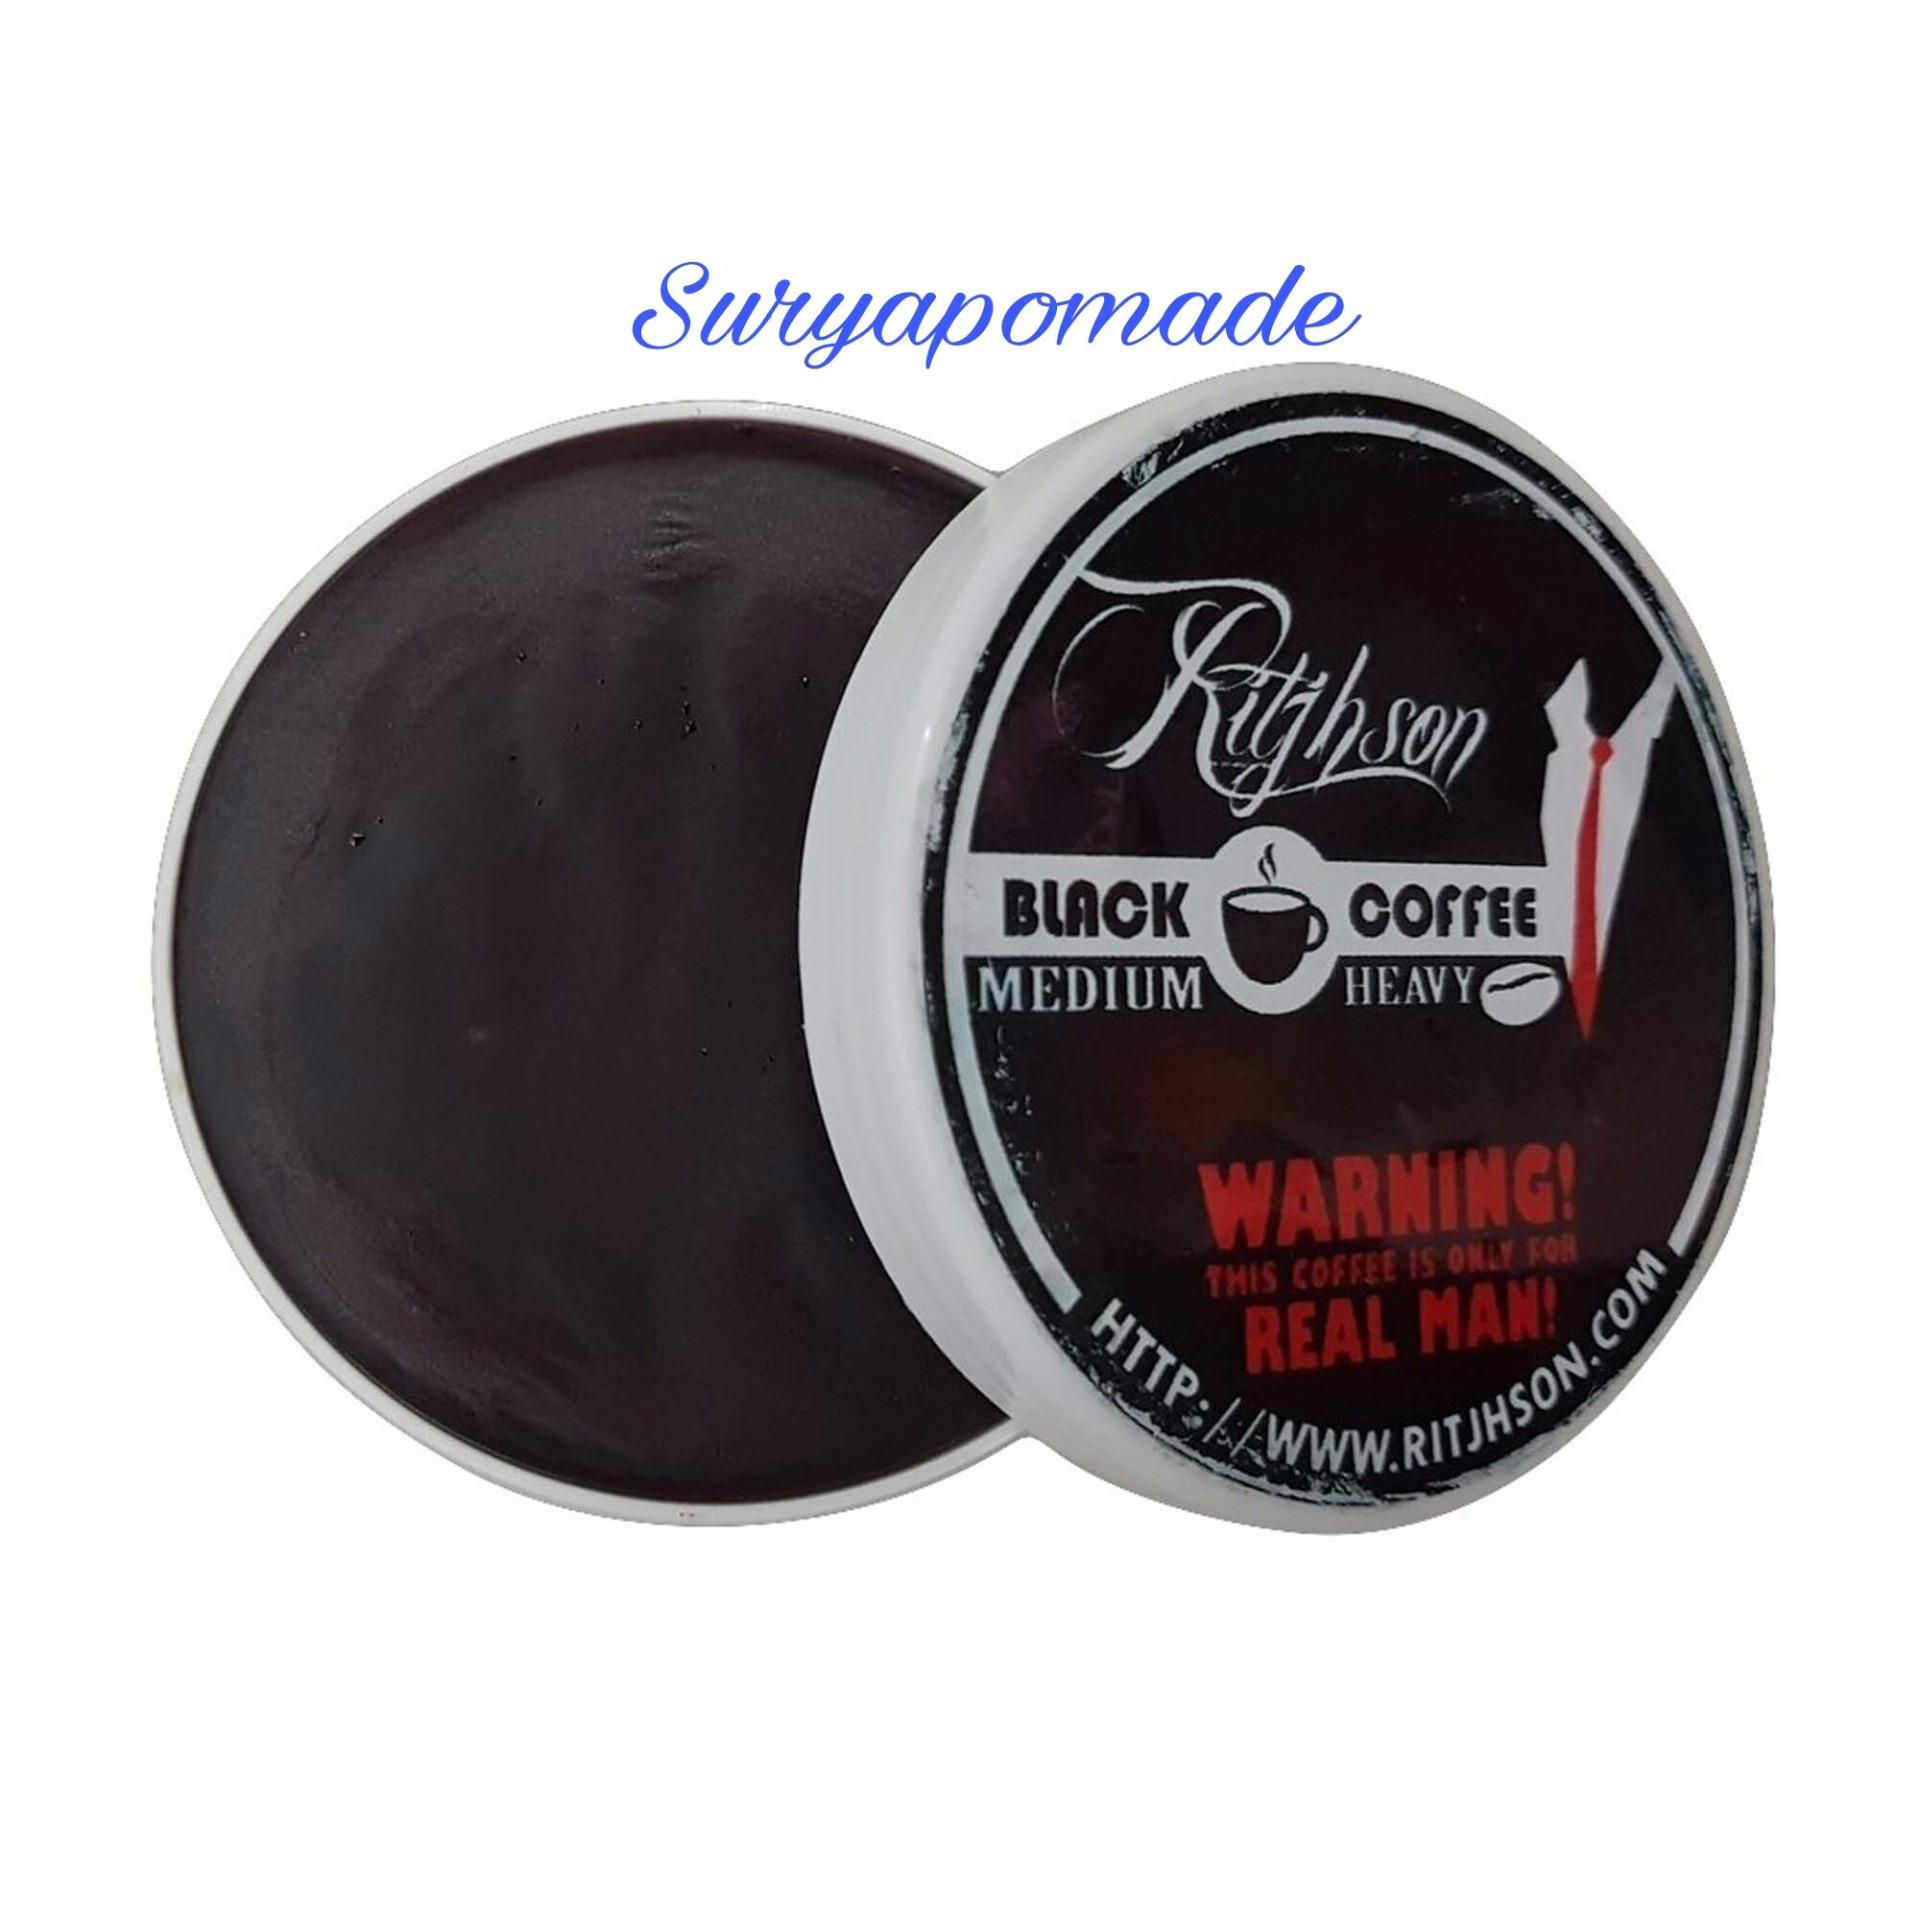 REVIEW Pomade Ritjhson Black Coffee Kopi Strong Hold Oilbase 3.5oz – Free Sisir Terbagus